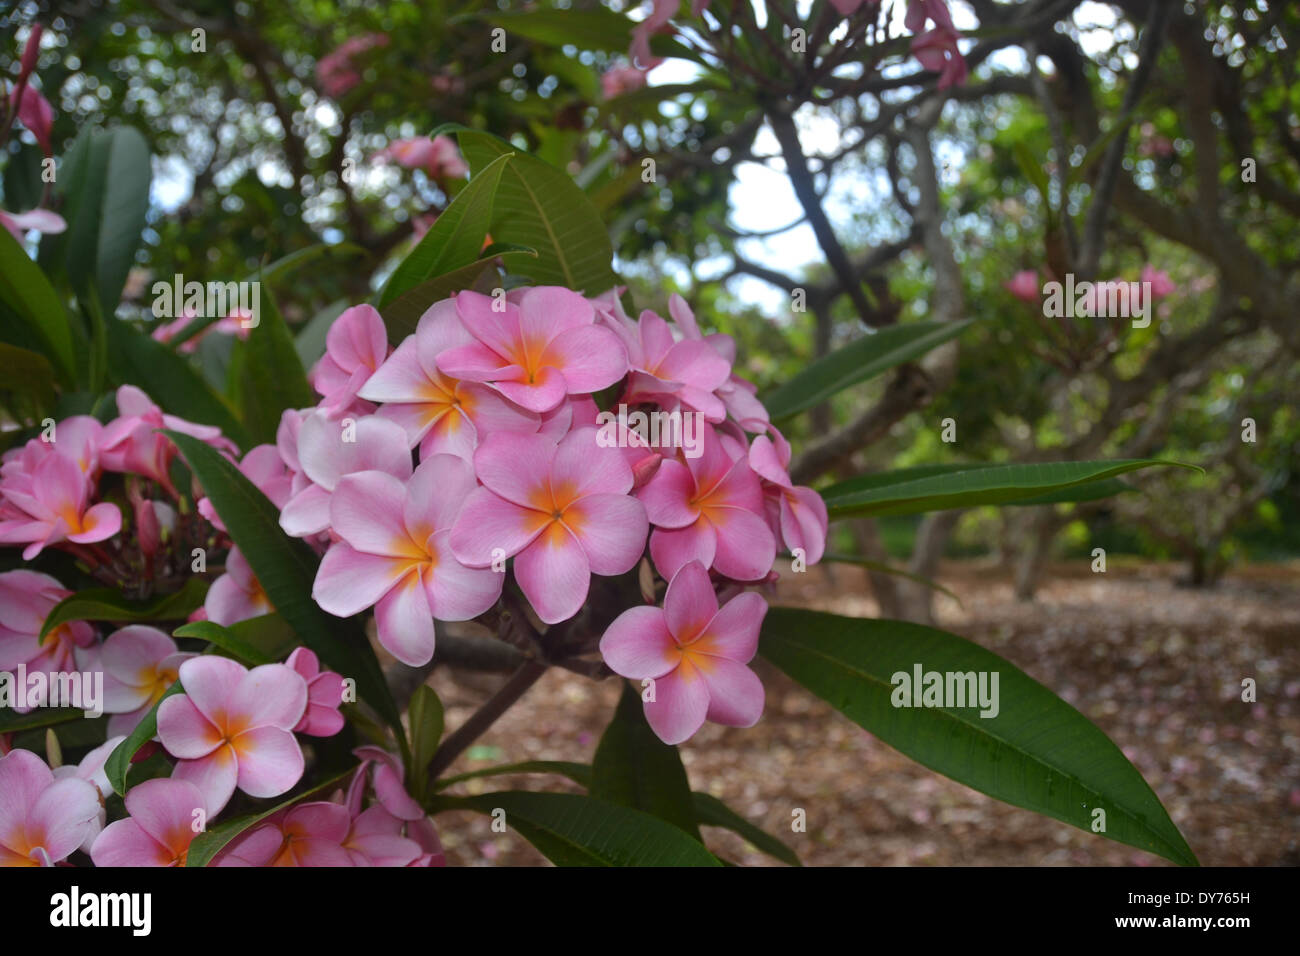 Pink Plumeria, Plumeria Sp., Plumeria Grove At Koko Crater Botanical Garden,  Oahu, Hawaii, USA